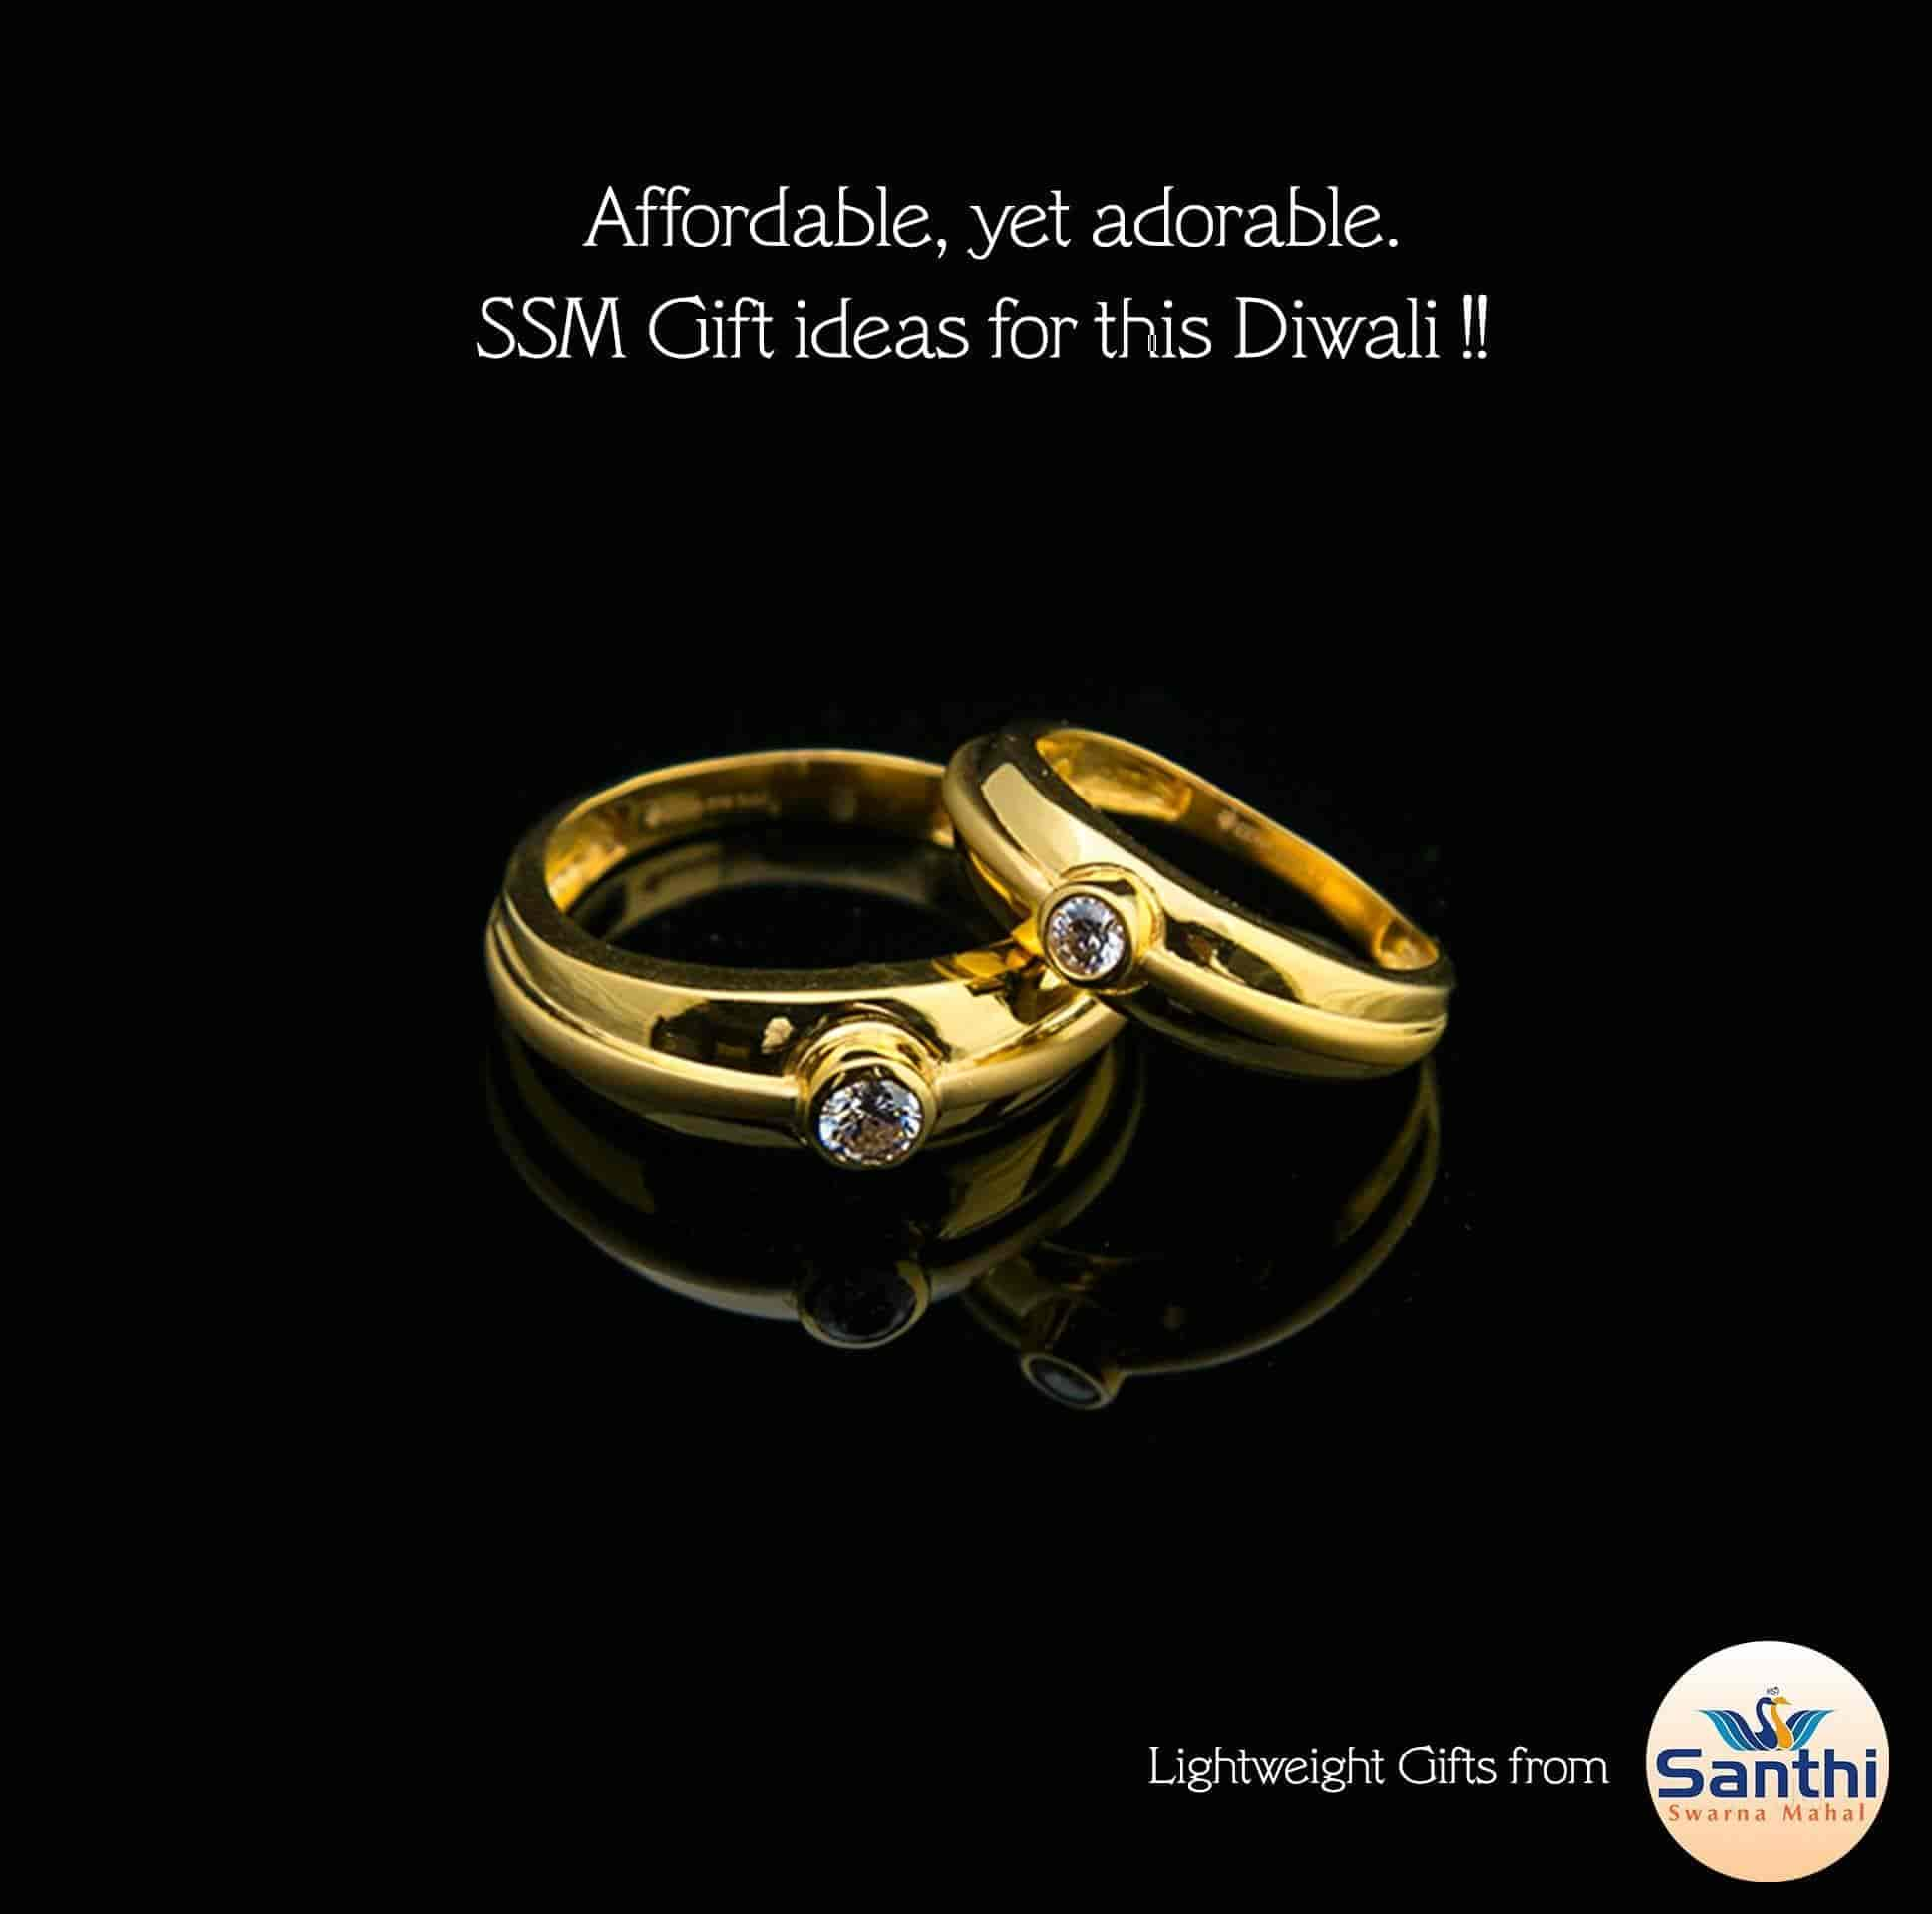 new wedding ring design rings swarnamahal